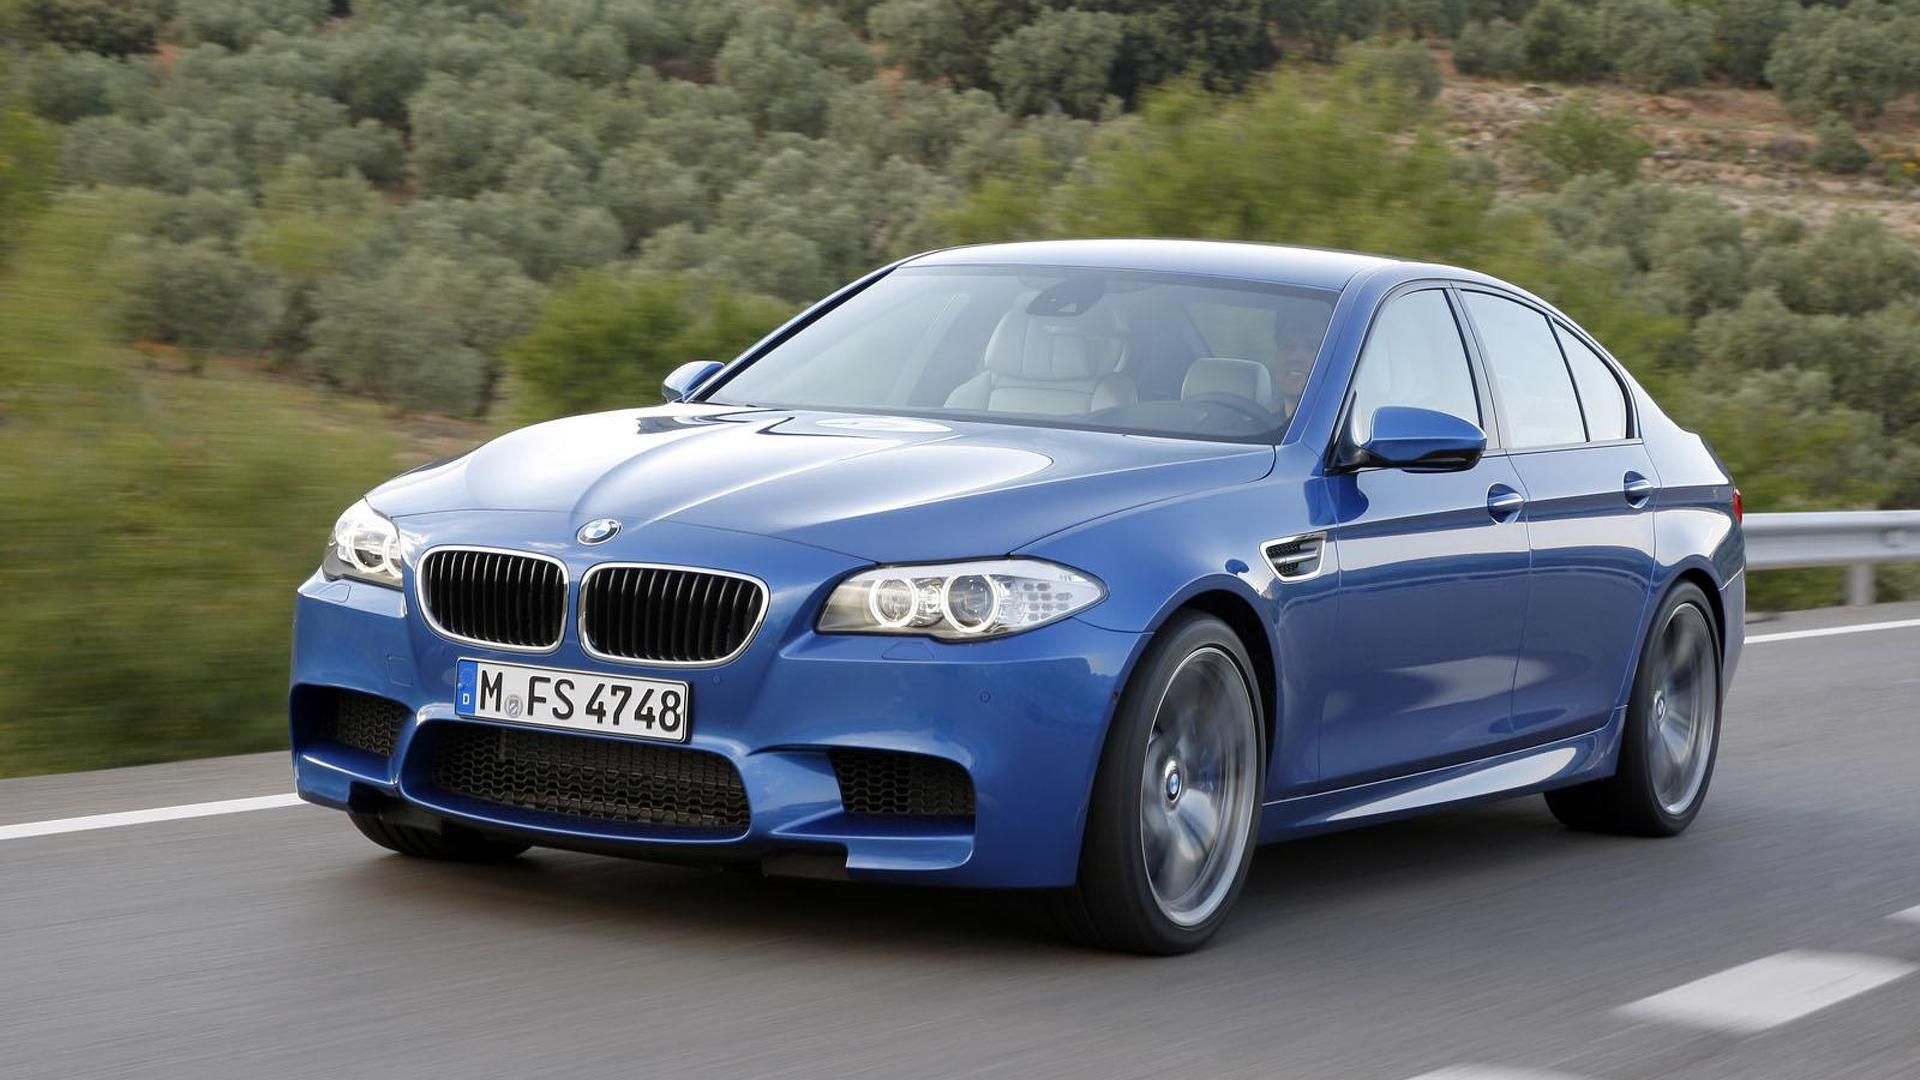 BMW stops M5 and M6 deliveries, issues recall due to engine oil pump problem